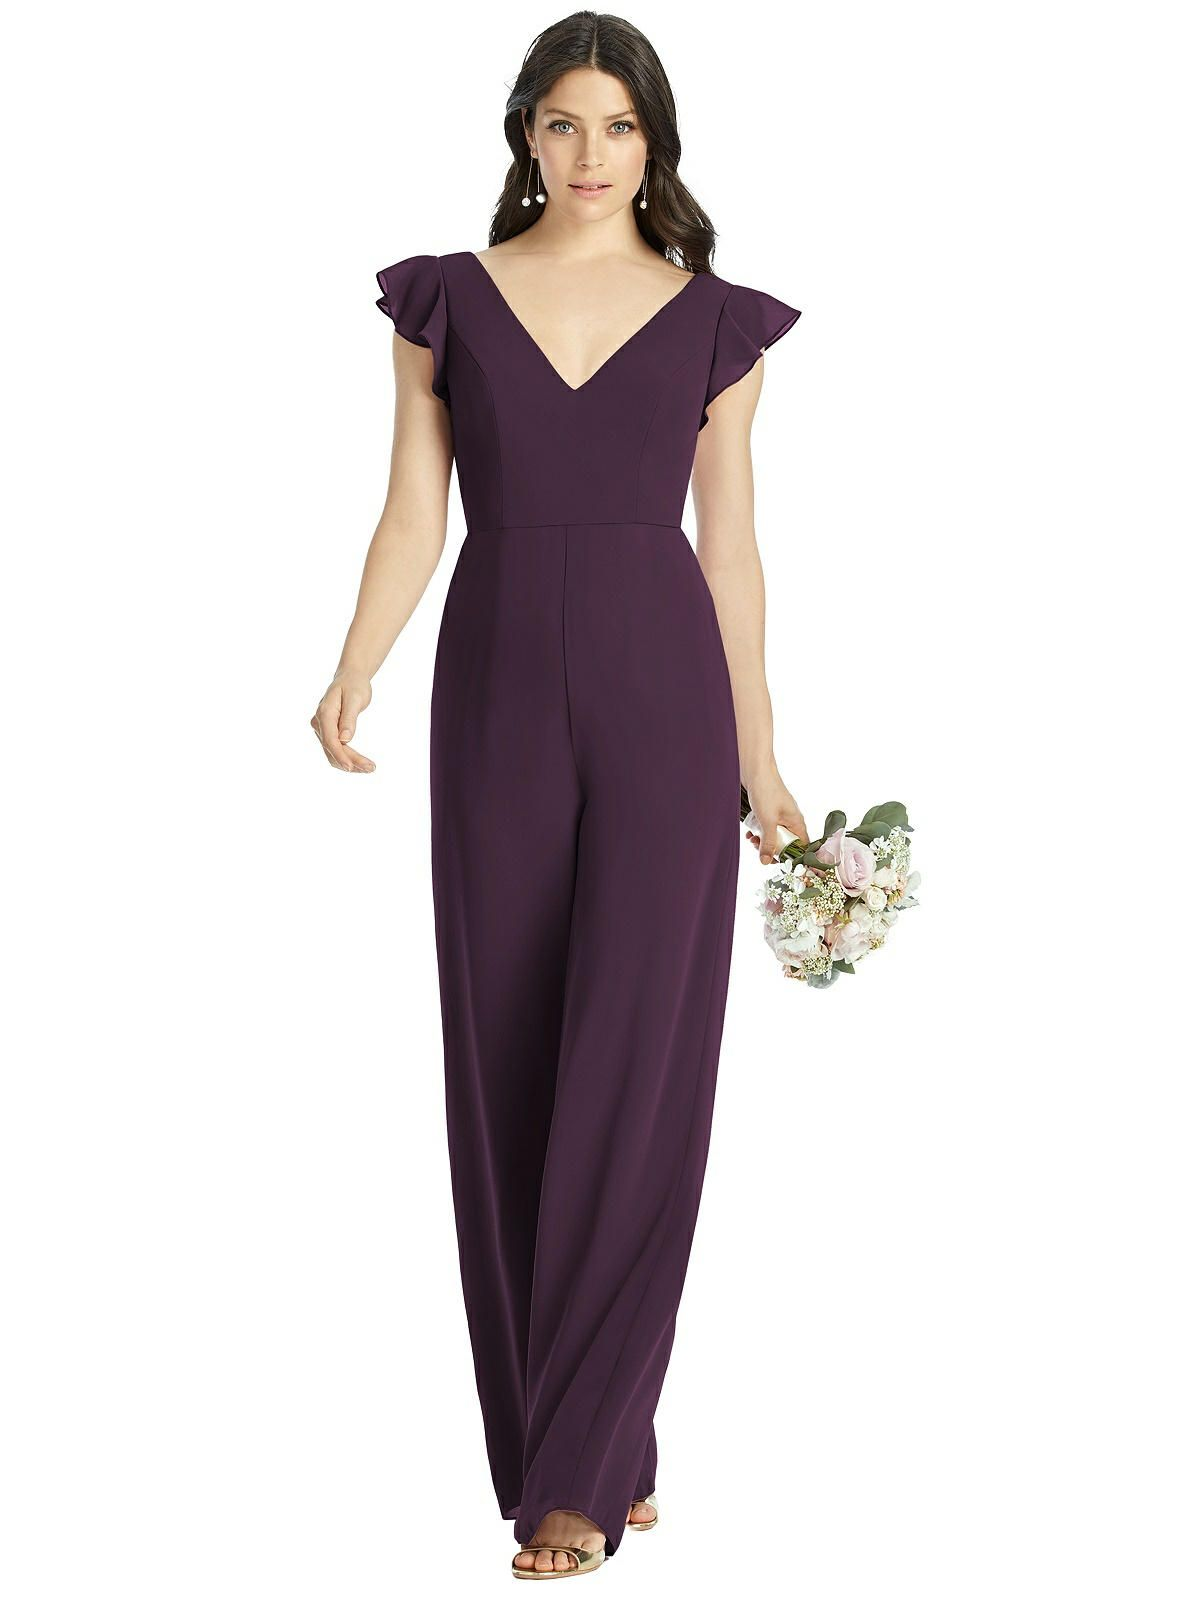 Adelaide Low V-Back Ruffle Sleeve Jumpsuit #bridesmaidjumpsuits